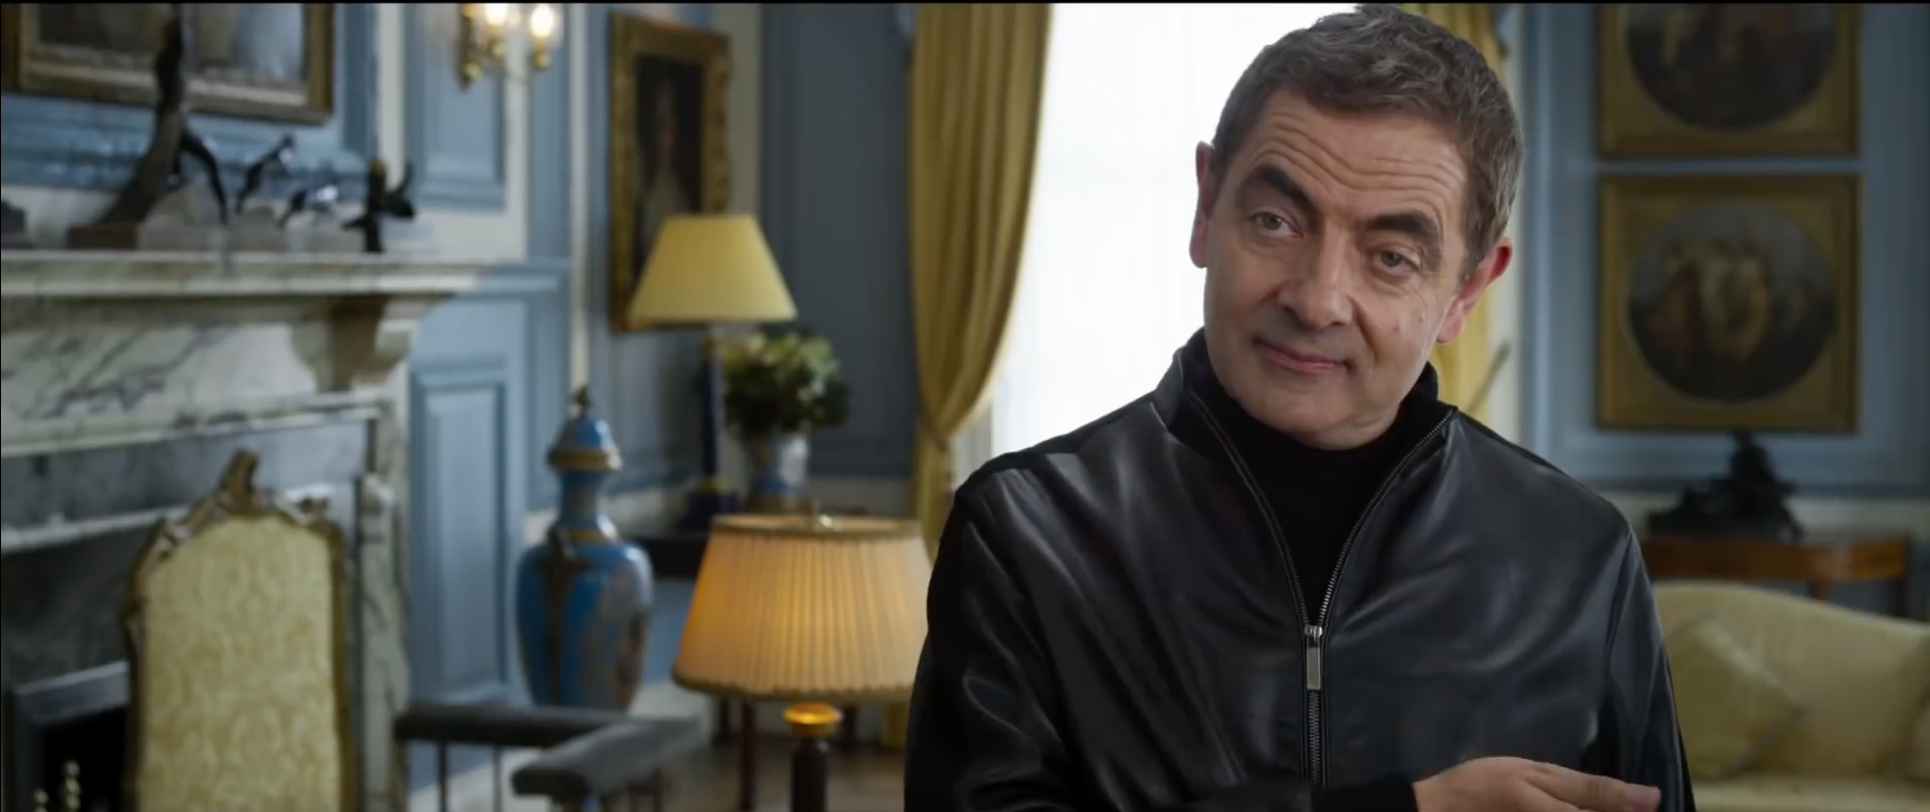 Rowan Atkinson as Johnny English in the 10 Downing Street film set of Johnny English Strikes Again. Production Design by Simon Bowles, Set Decoration by Liz Griffiths. Photo c/o Universal Pictures.